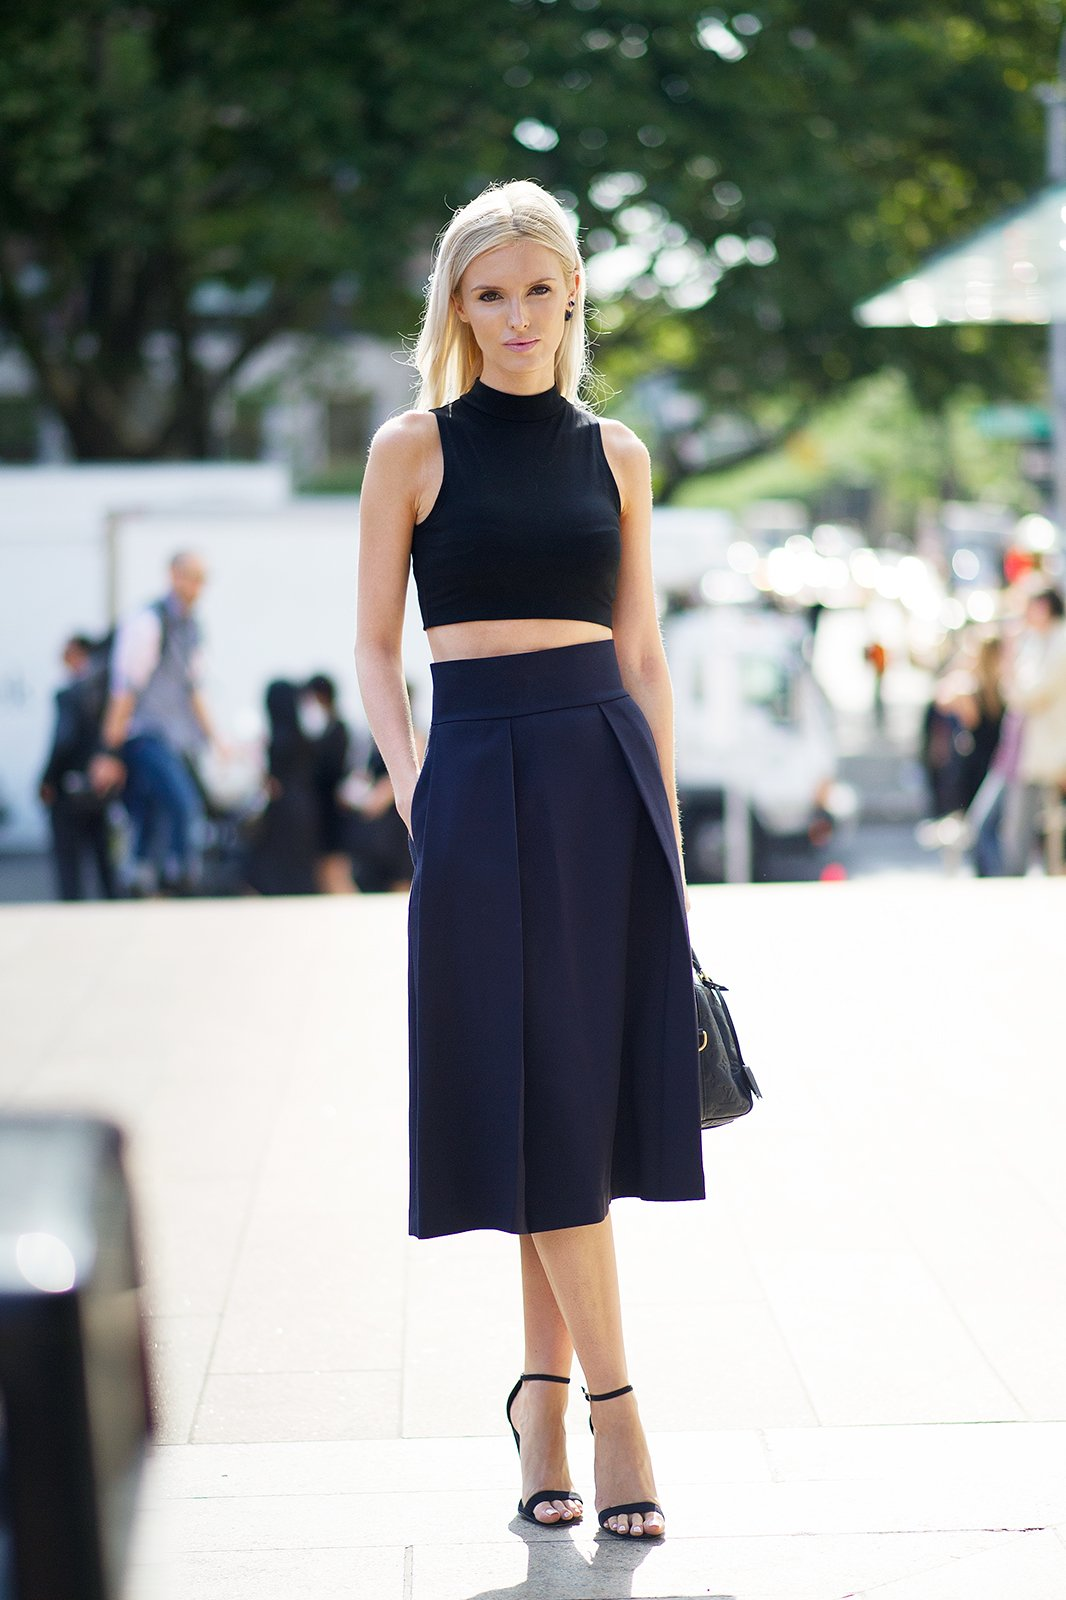 Crop Top With High Waisted Maxi Skirt - Dress Ala